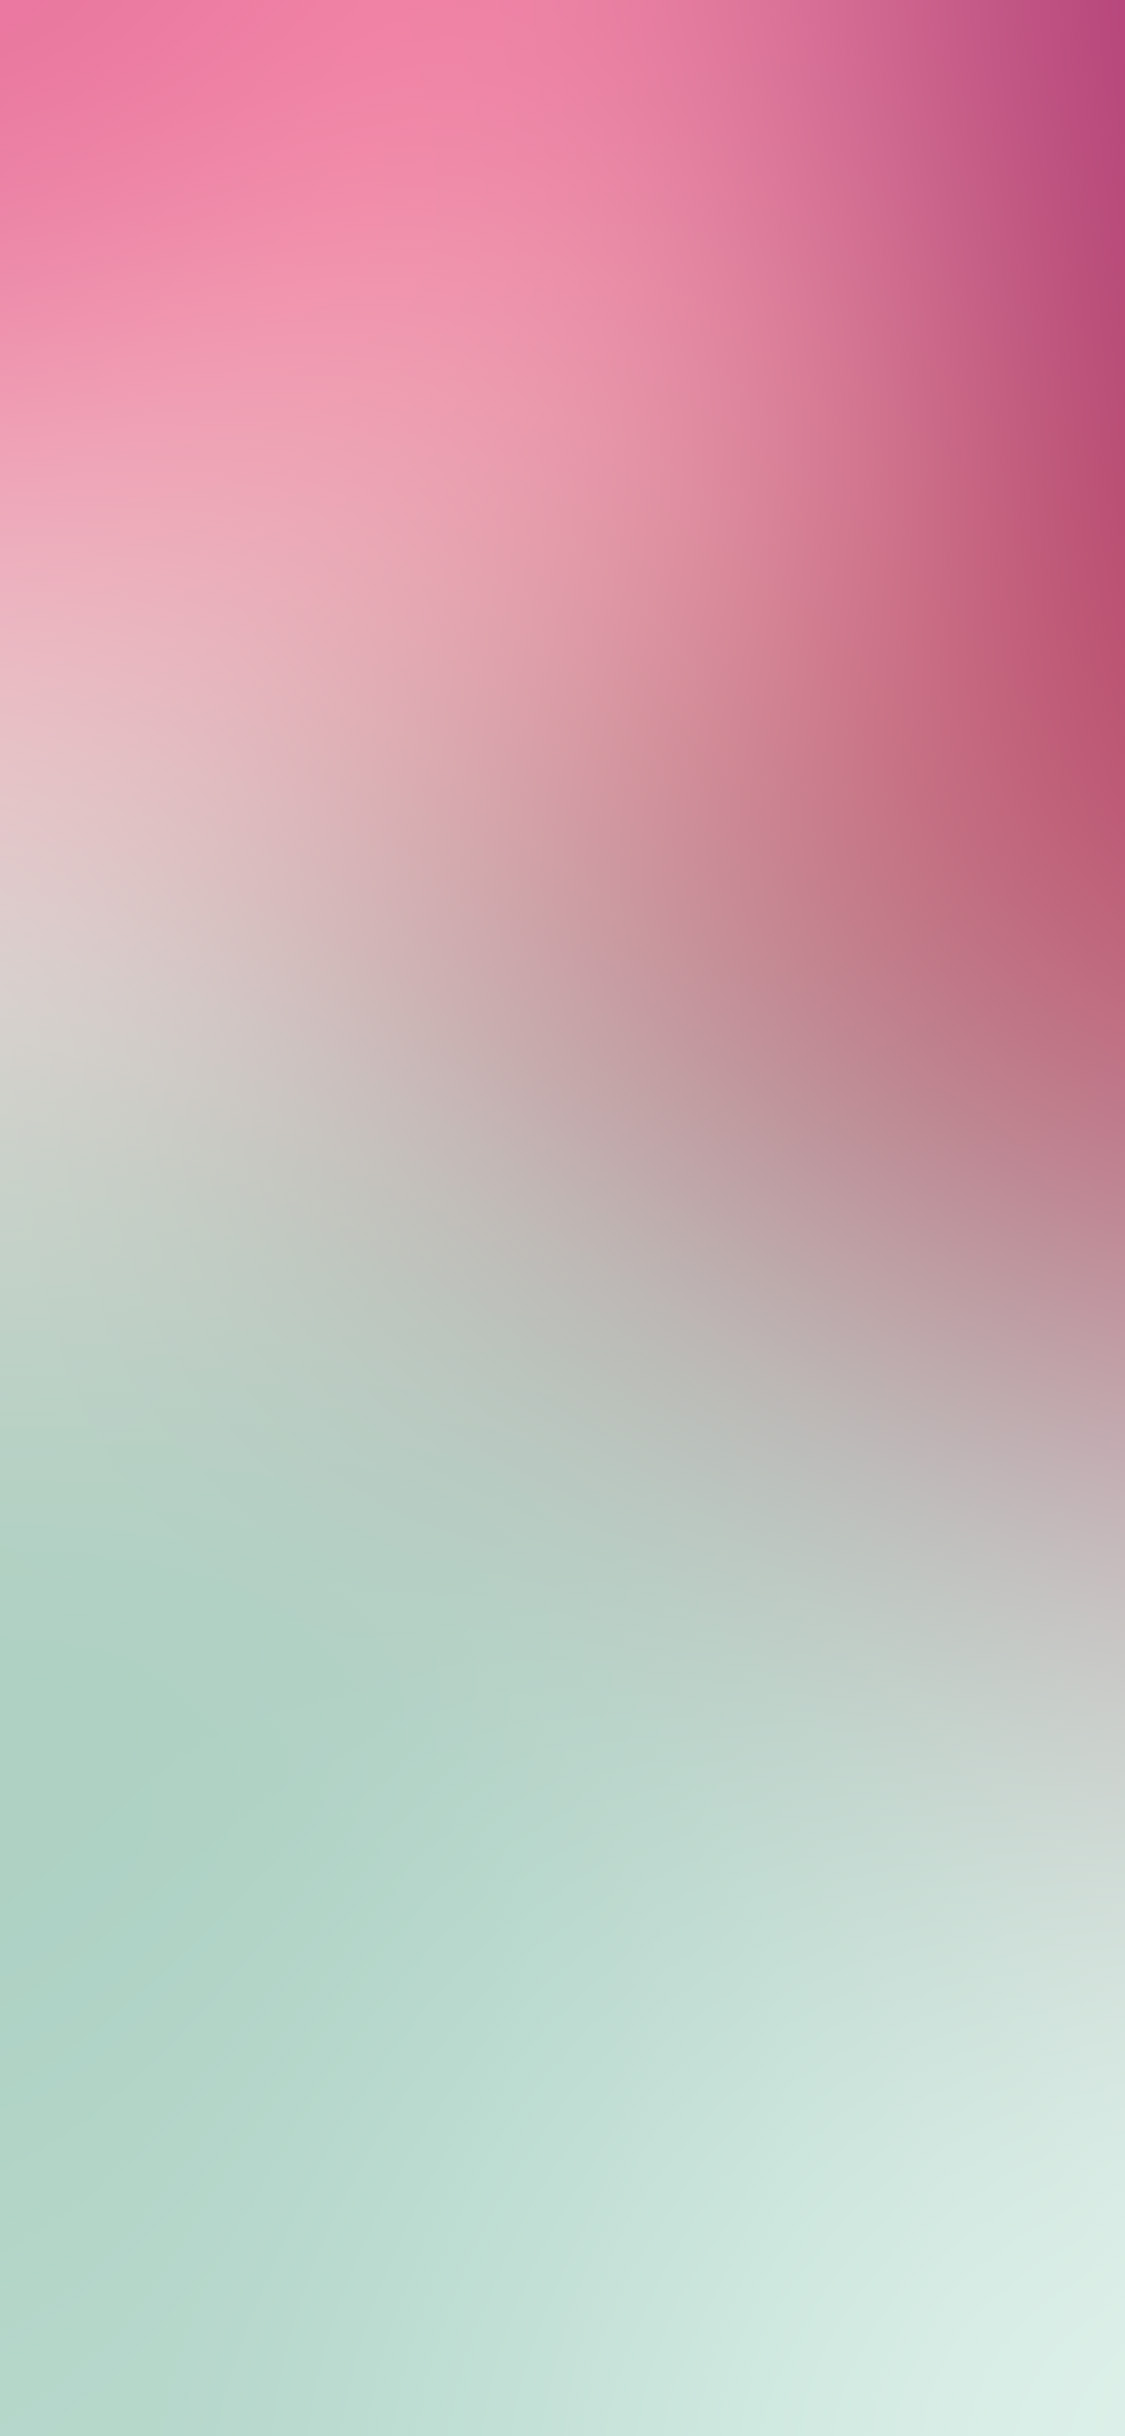 iPhonexpapers.com-Apple-iPhone-wallpaper-sn30-pink-rose-pastel-blur-gradation